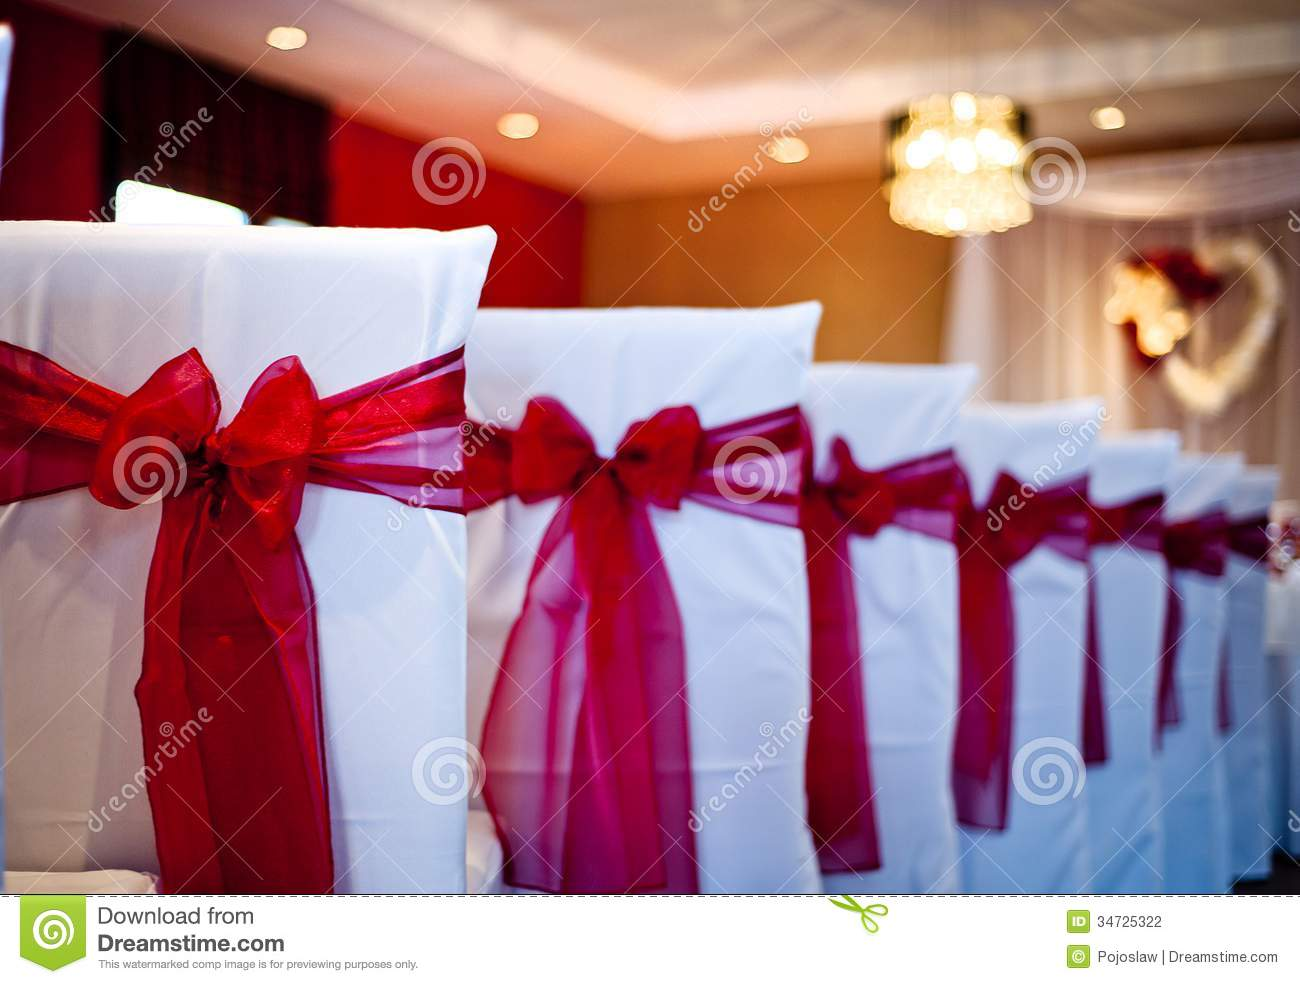 Event Decoration Stock Photography - Image: 34725322